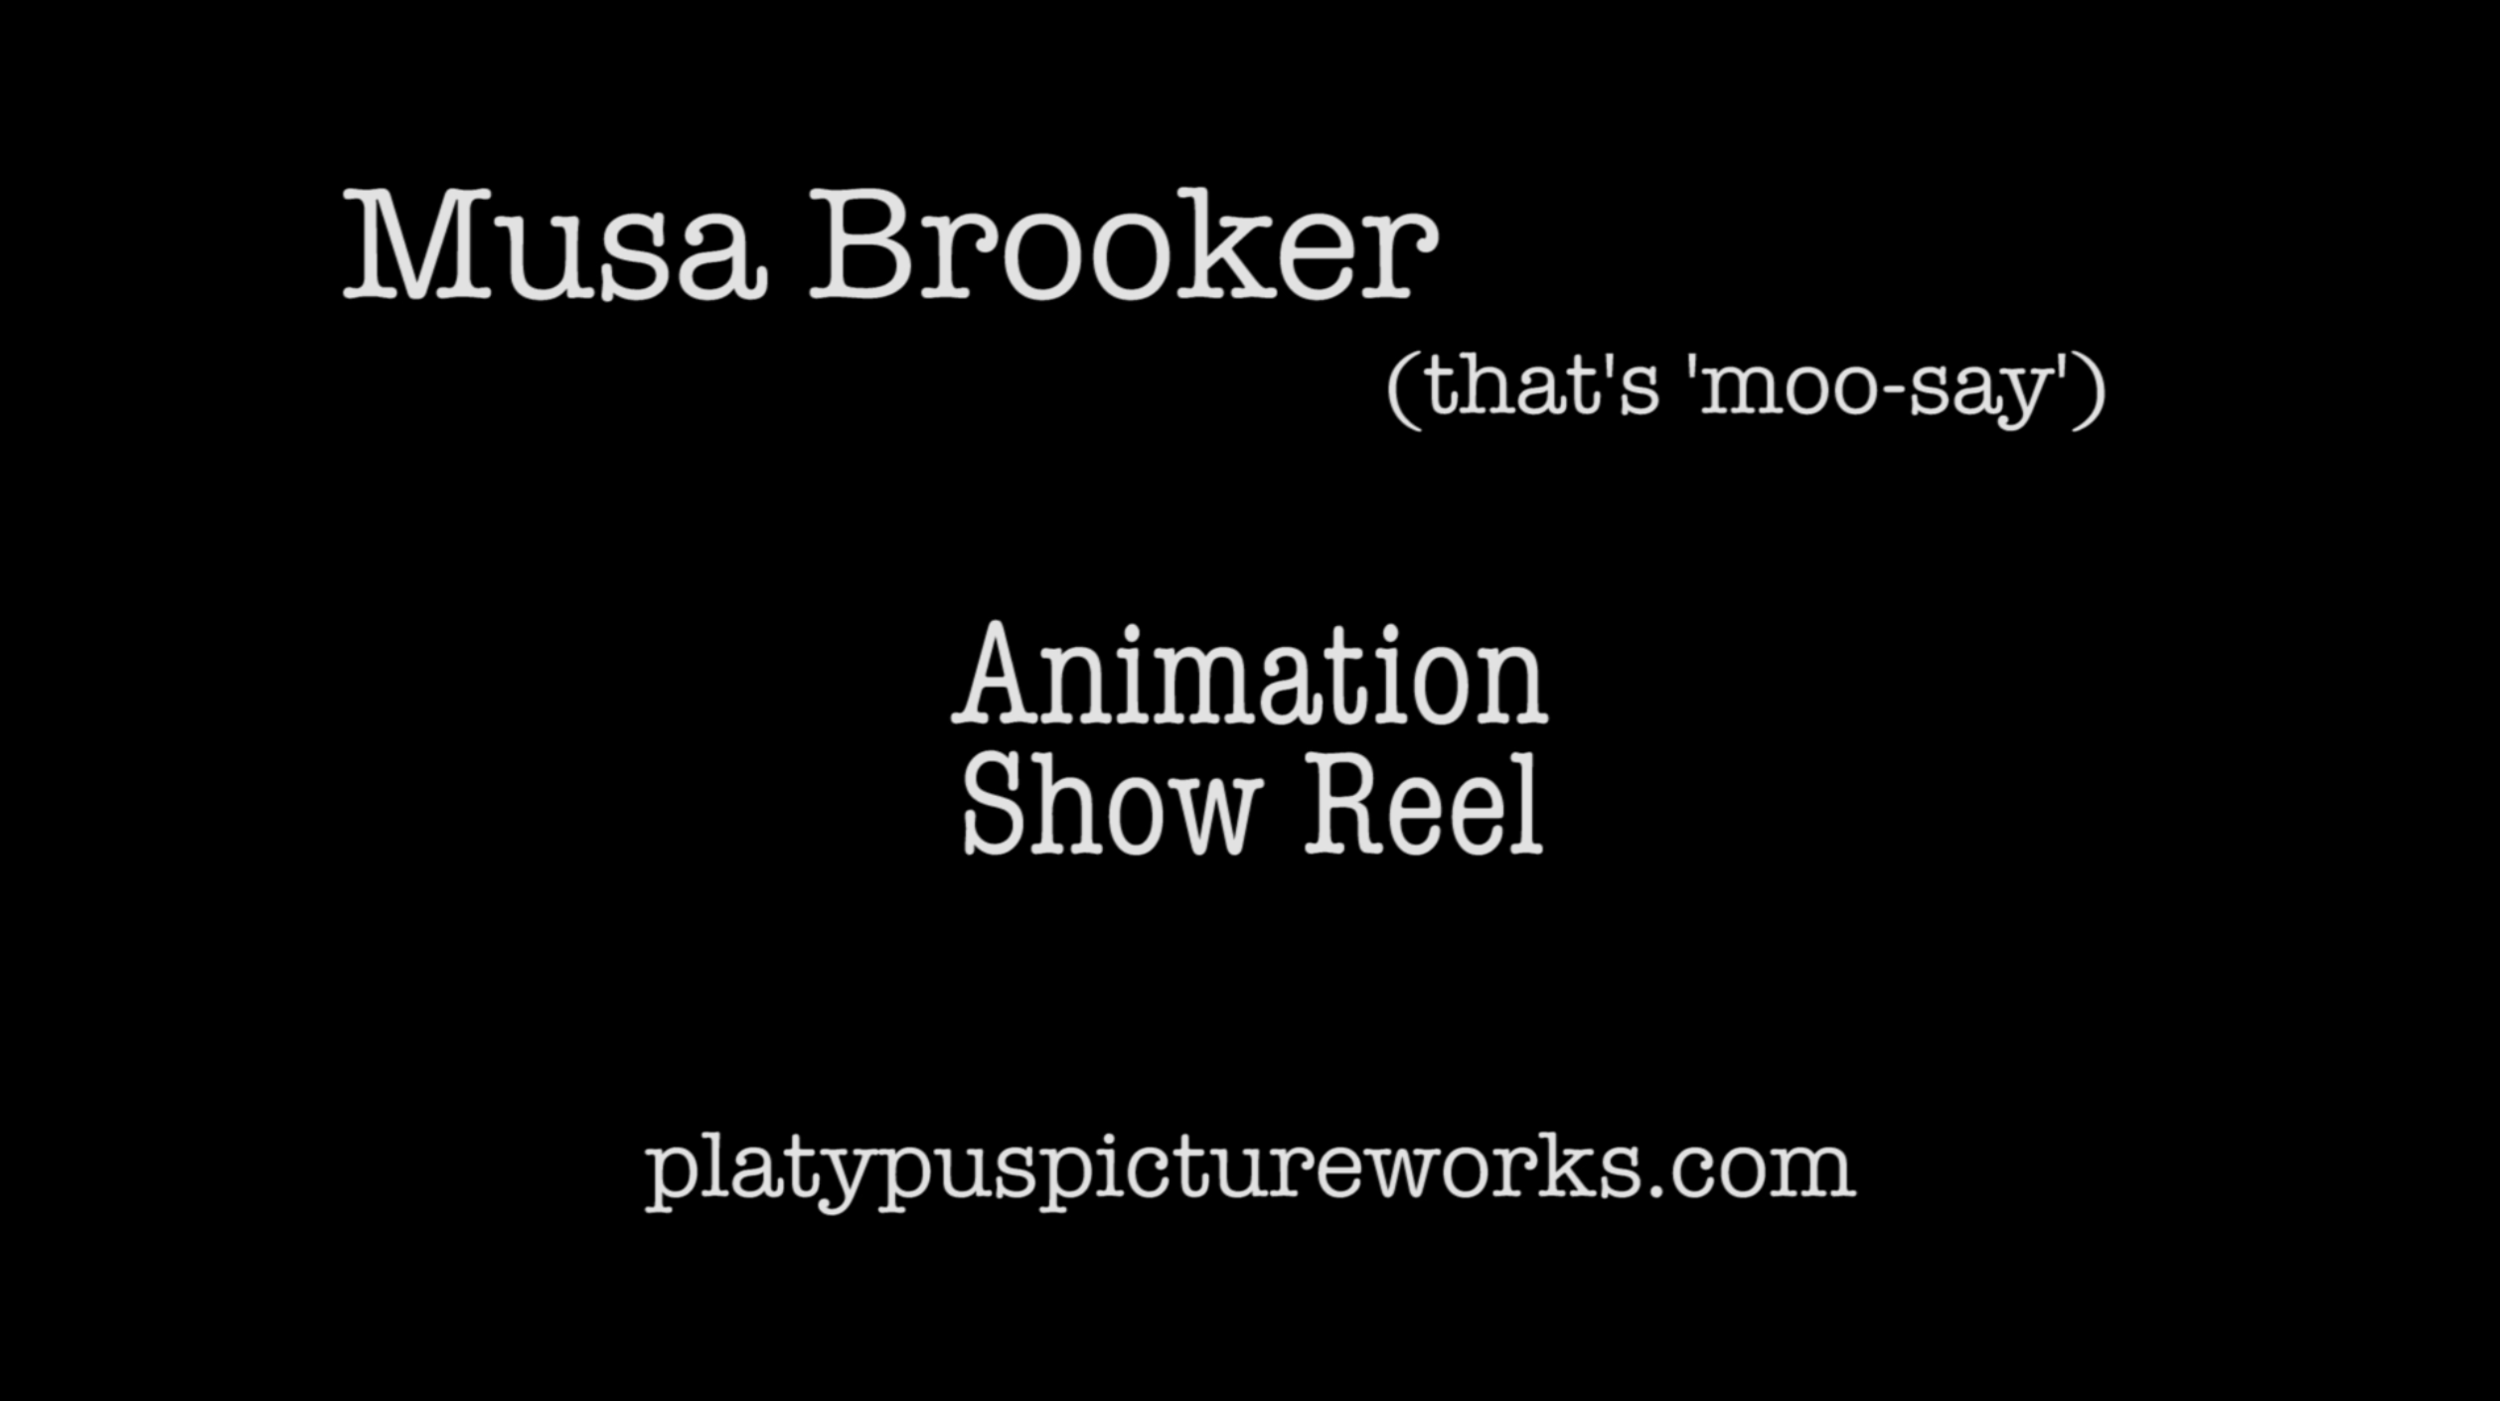 General Animation Show Reel